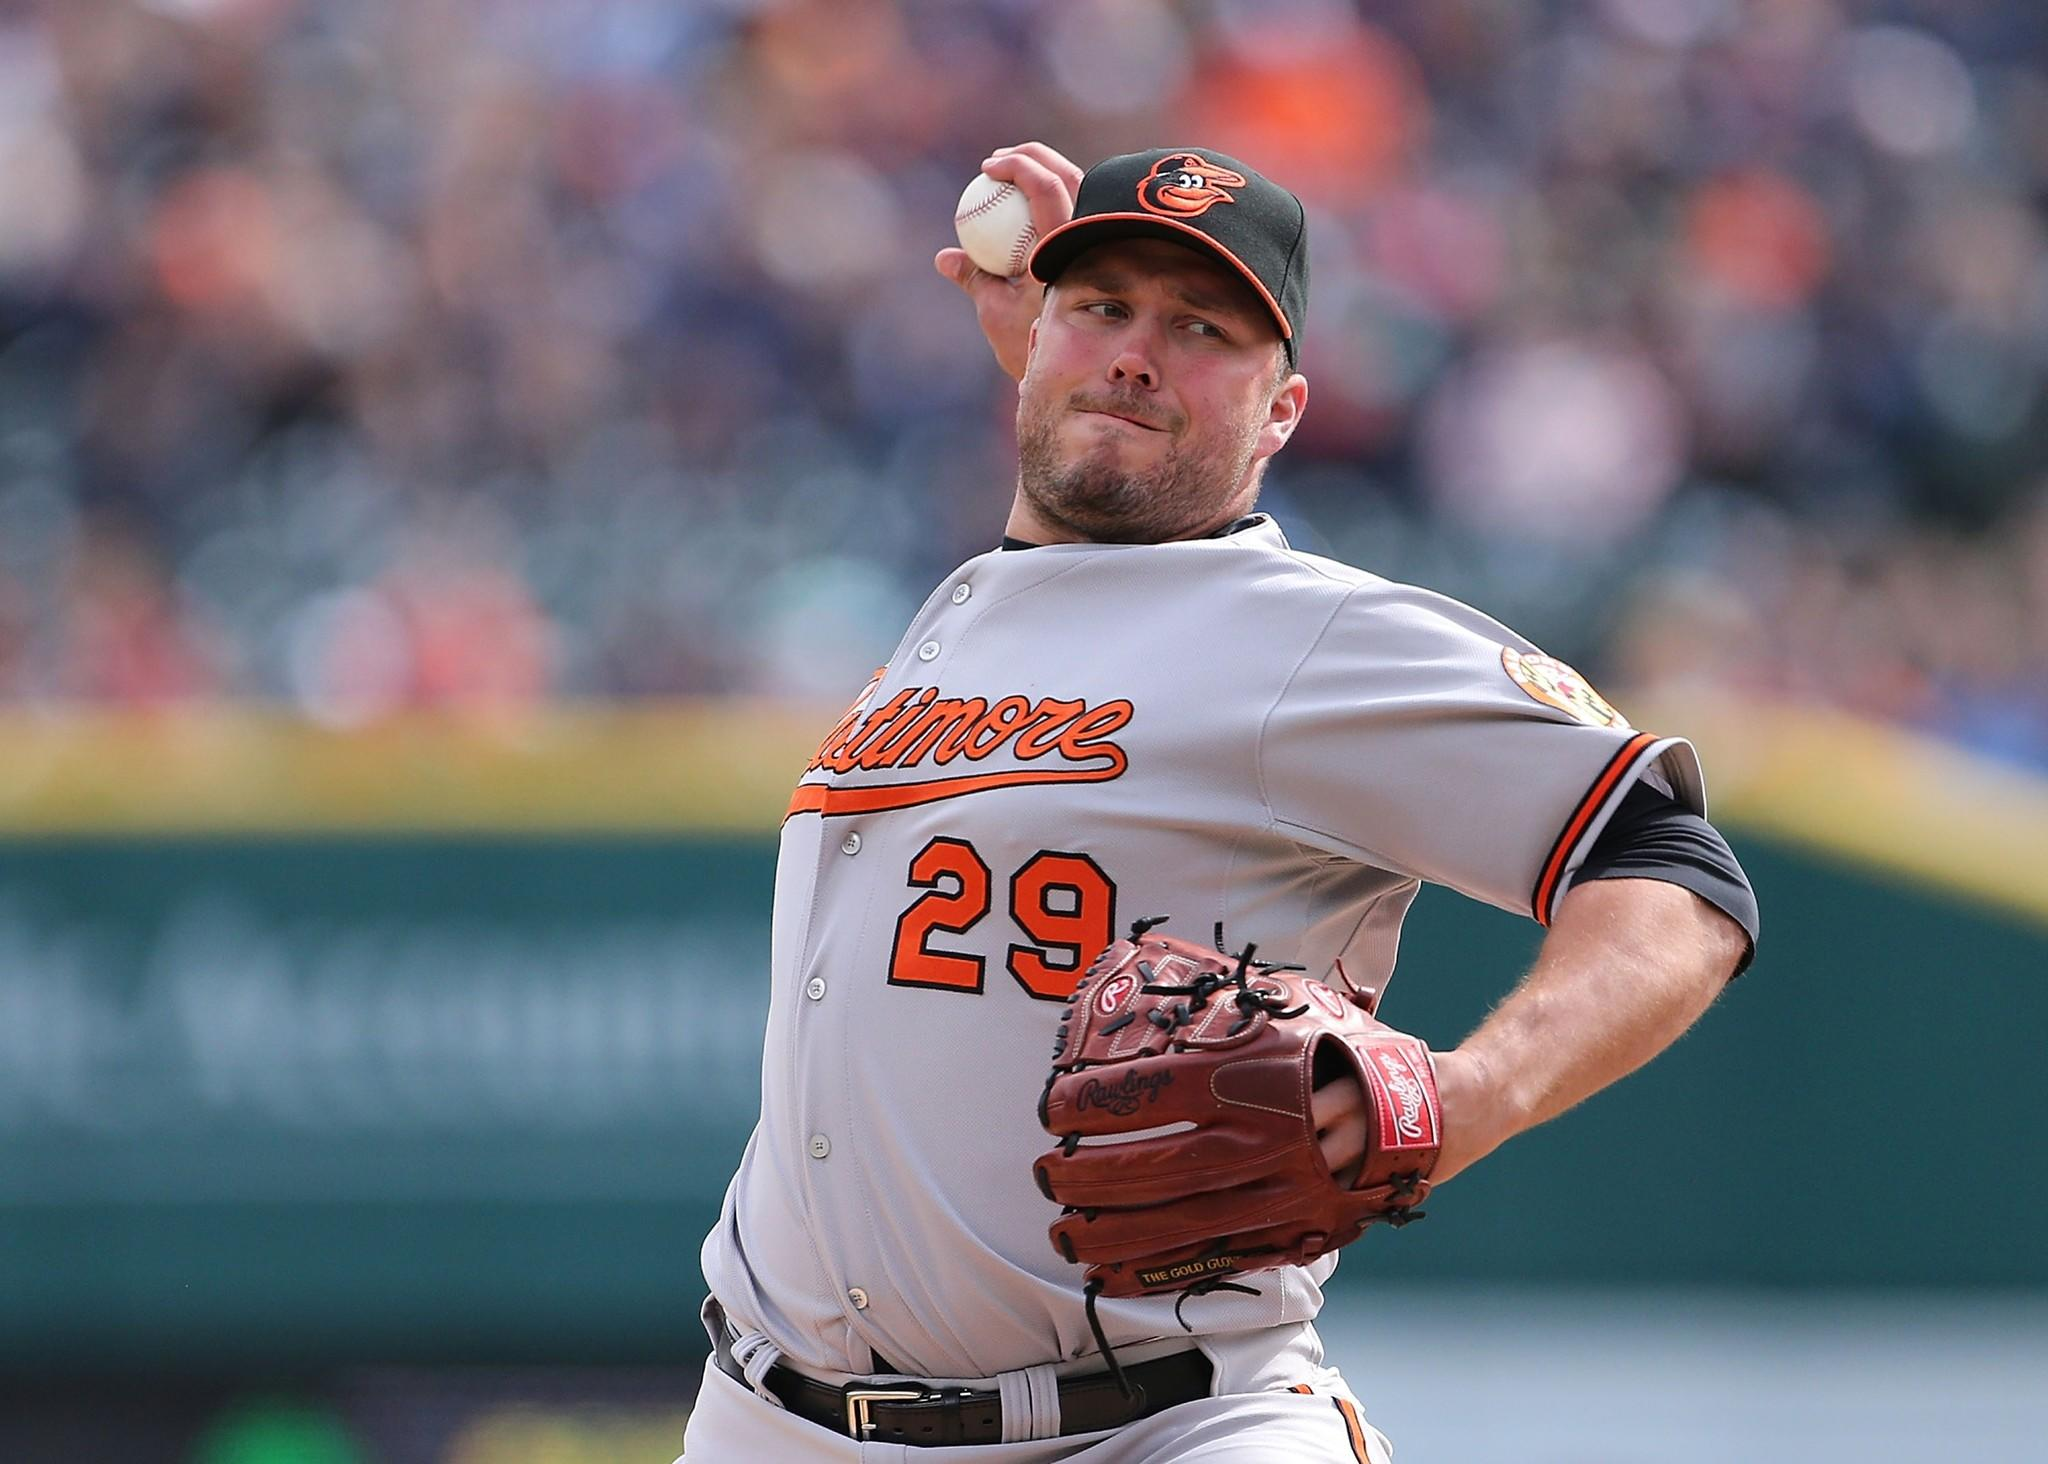 After the Orioles traded Jim Johnson to the Oakland Athletics in December 2013 and failed to sign a proven closer in free agency, right-hander Tommy Hunter inherited the ninth-inning role.